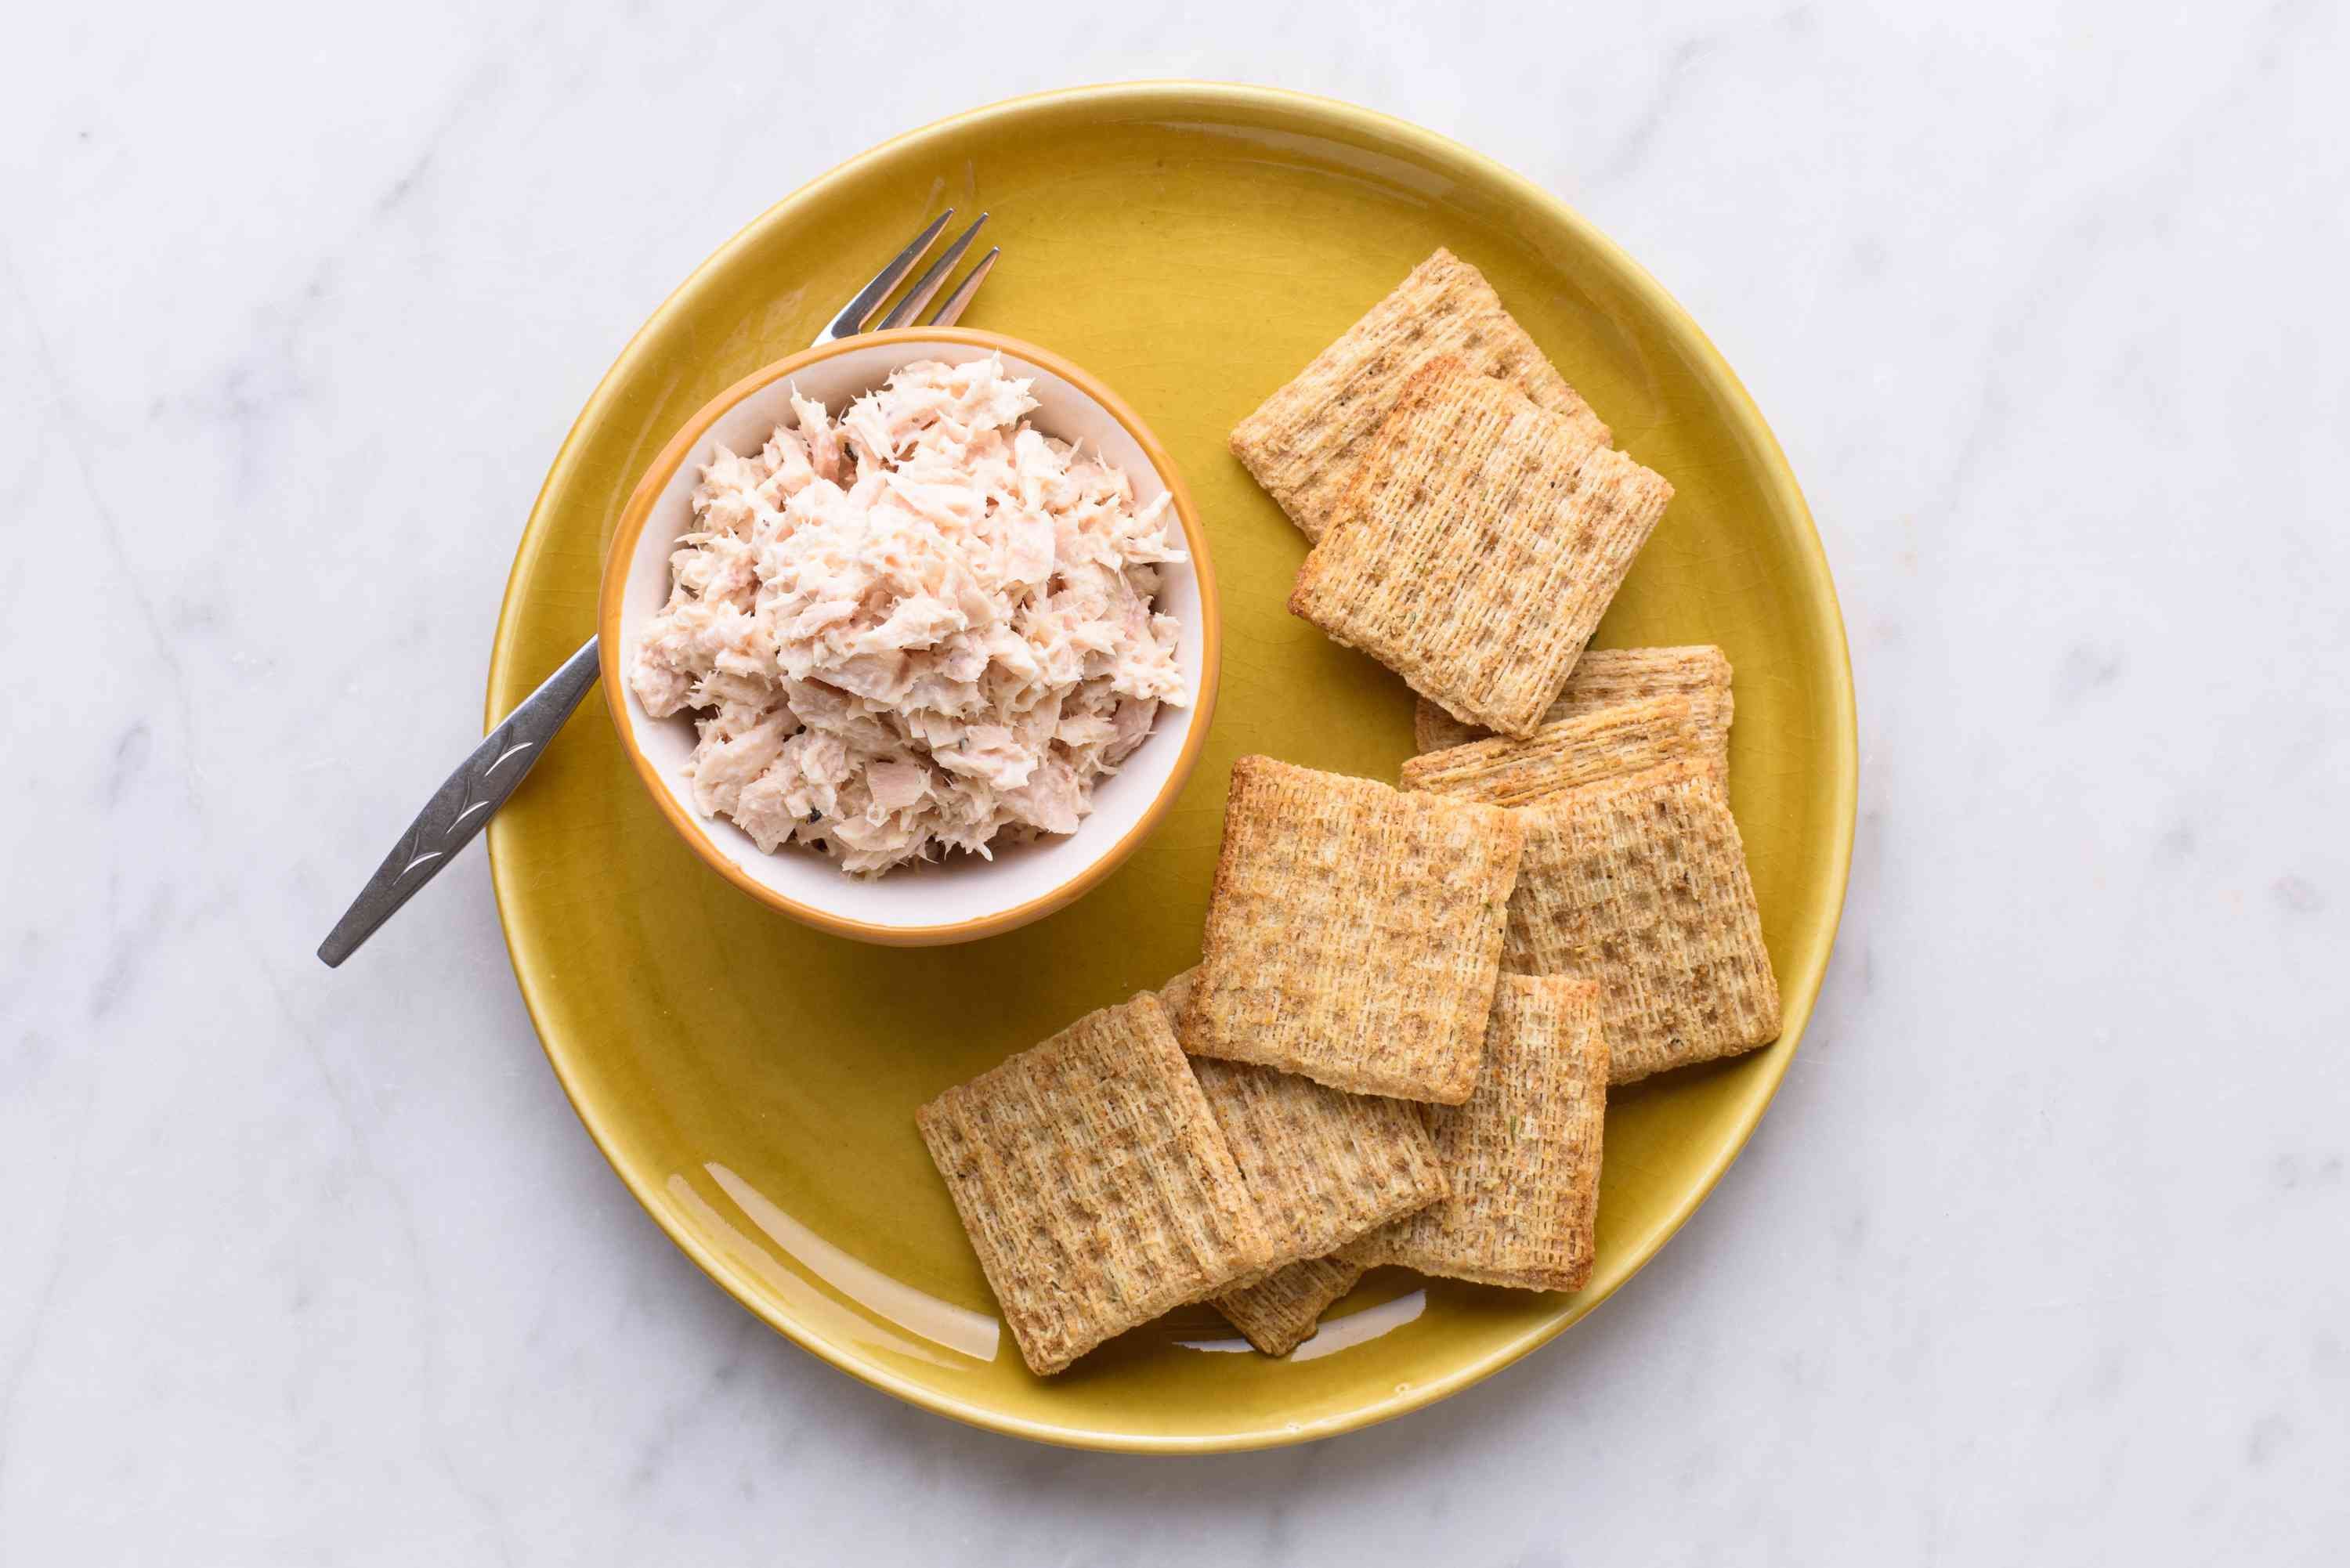 tuna and crackers on a plate